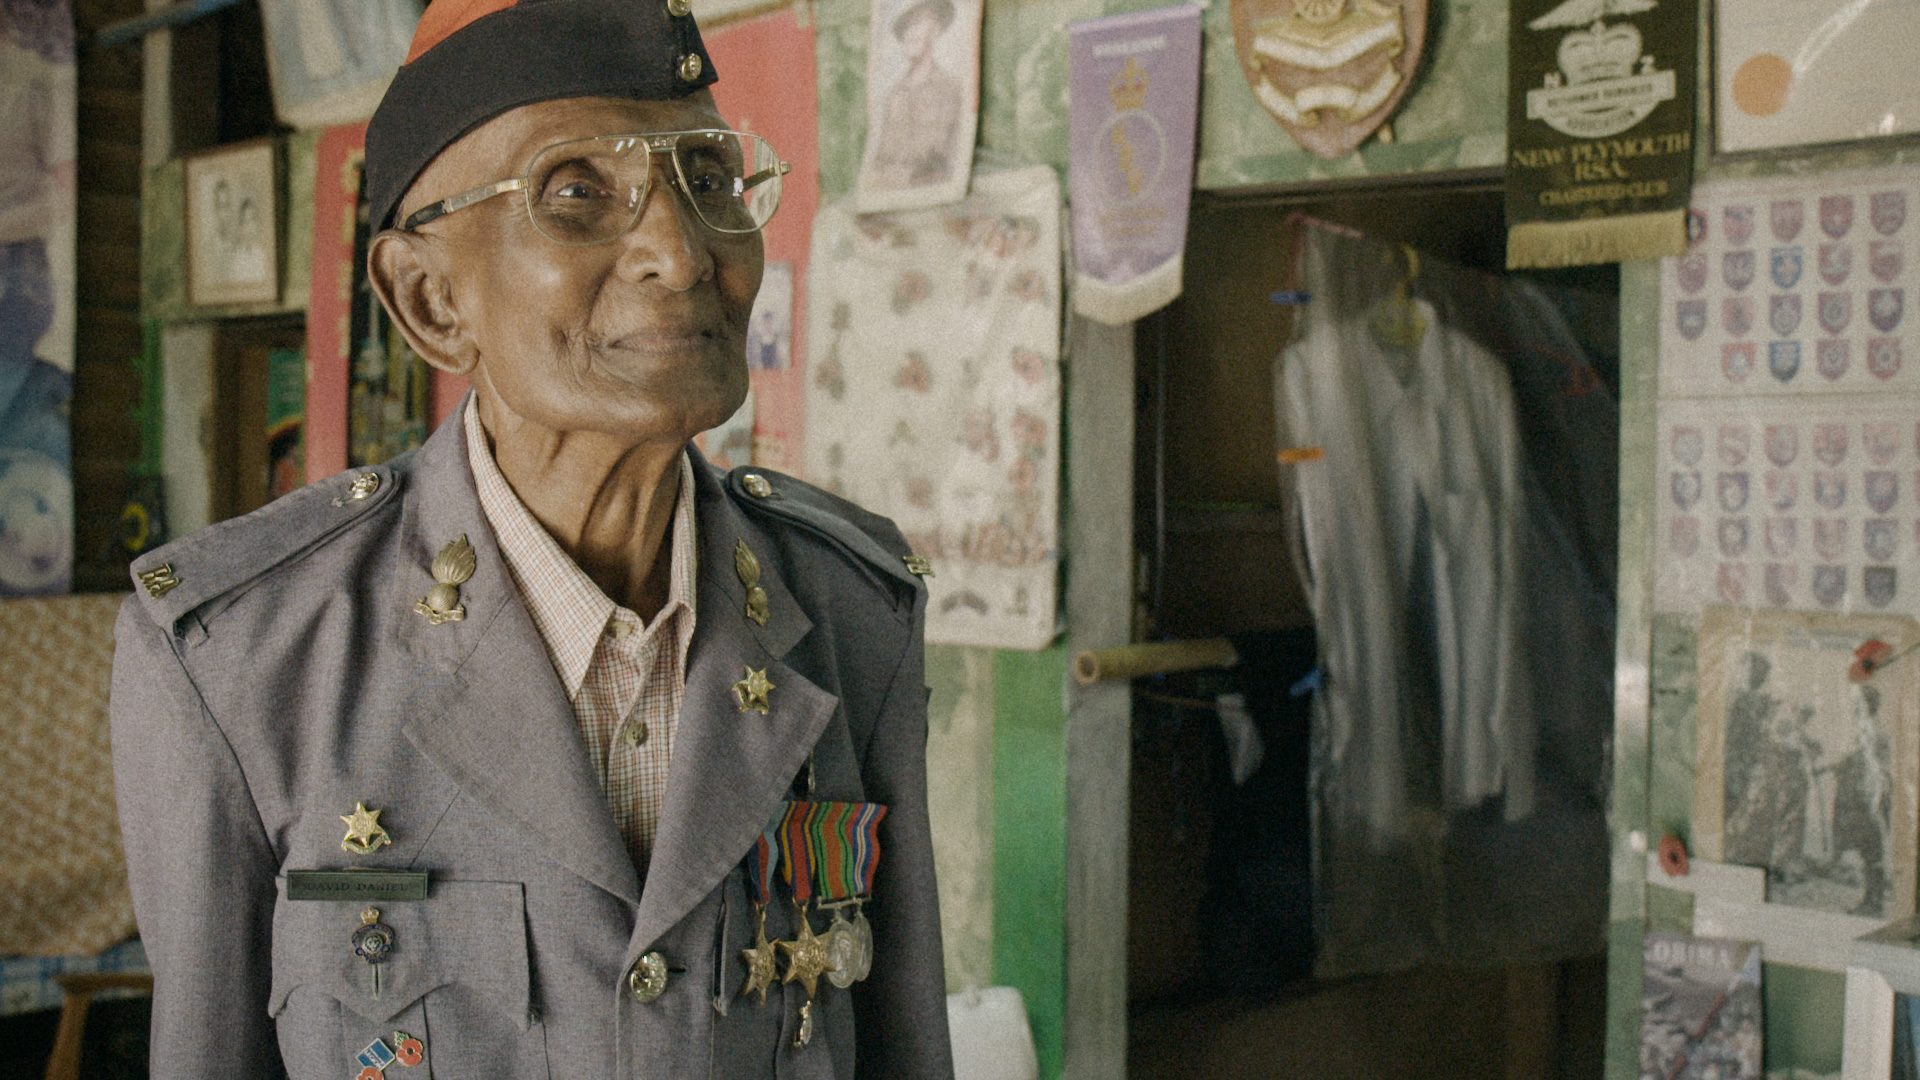 Forgotten Allies: The Search for Burma's Lost Heroes